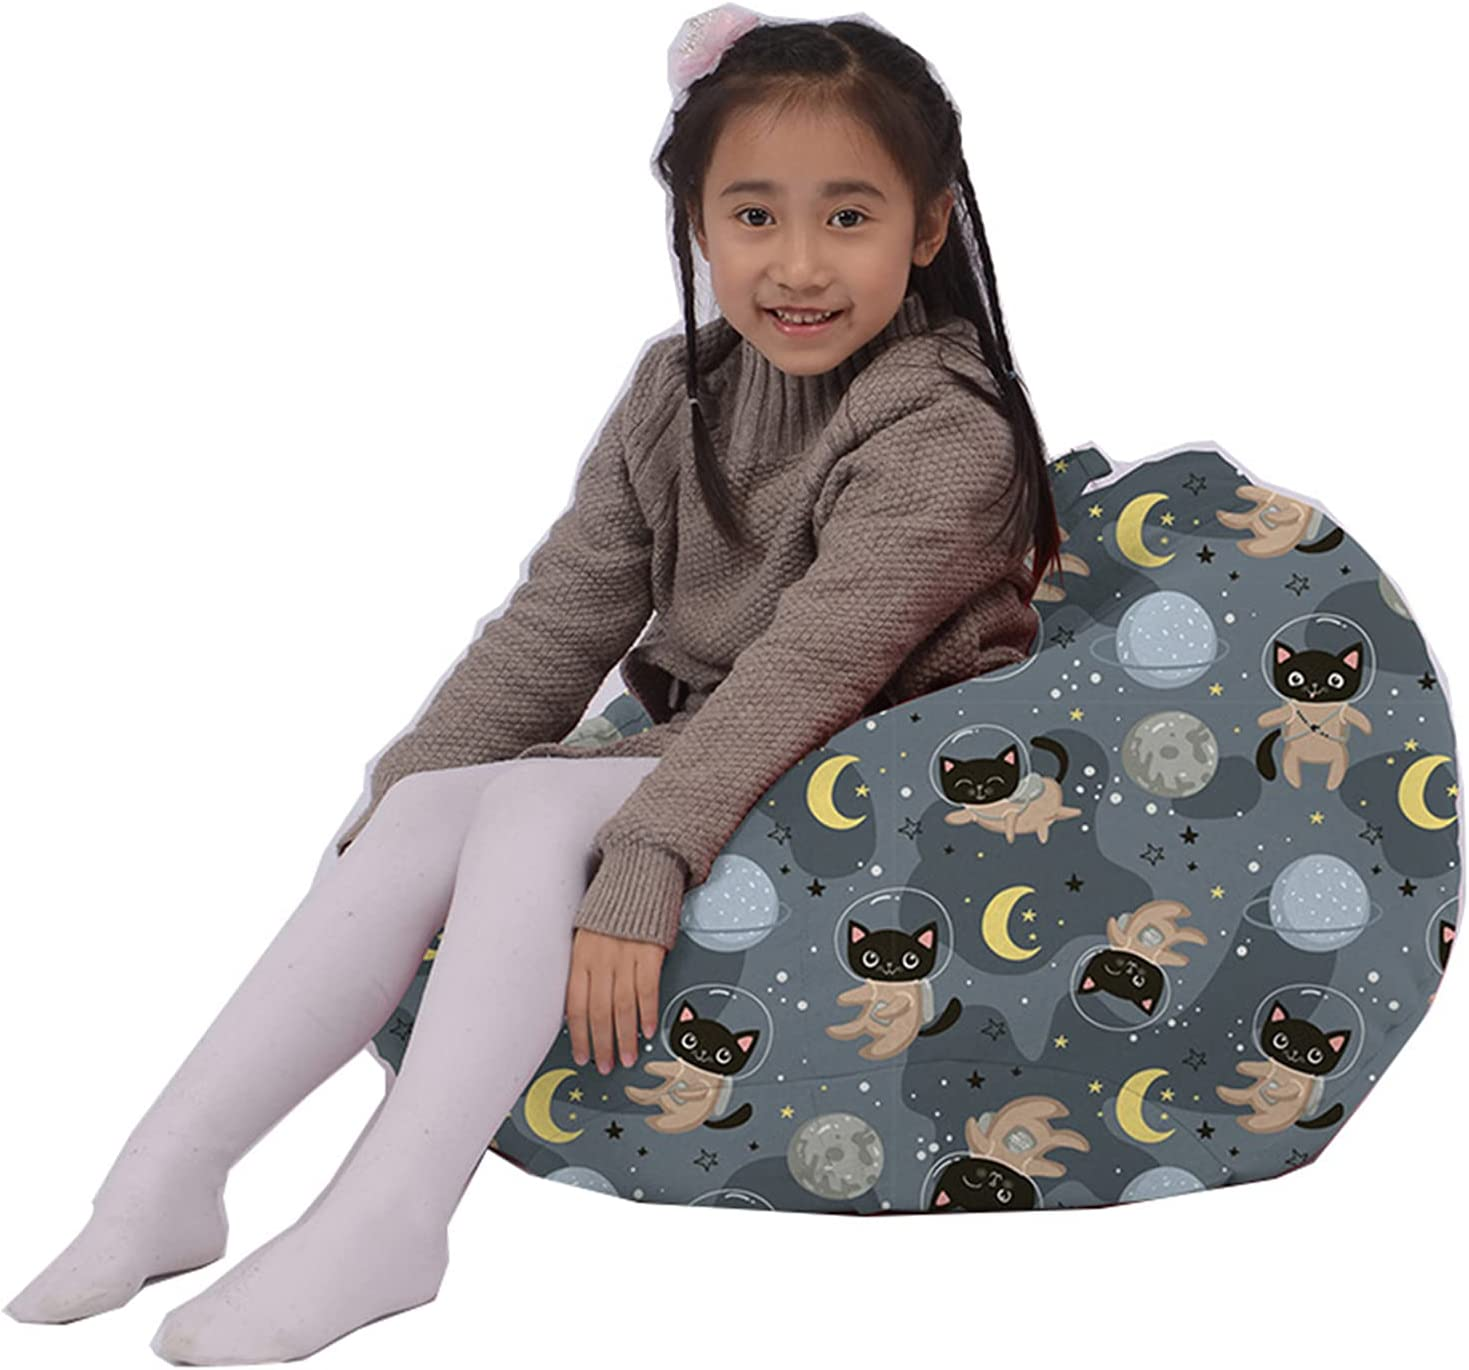 LDIW Bean Bag Chair Cover for Decoration Max 80% OFF Gorgeous Kids Cute Soft Bedroom